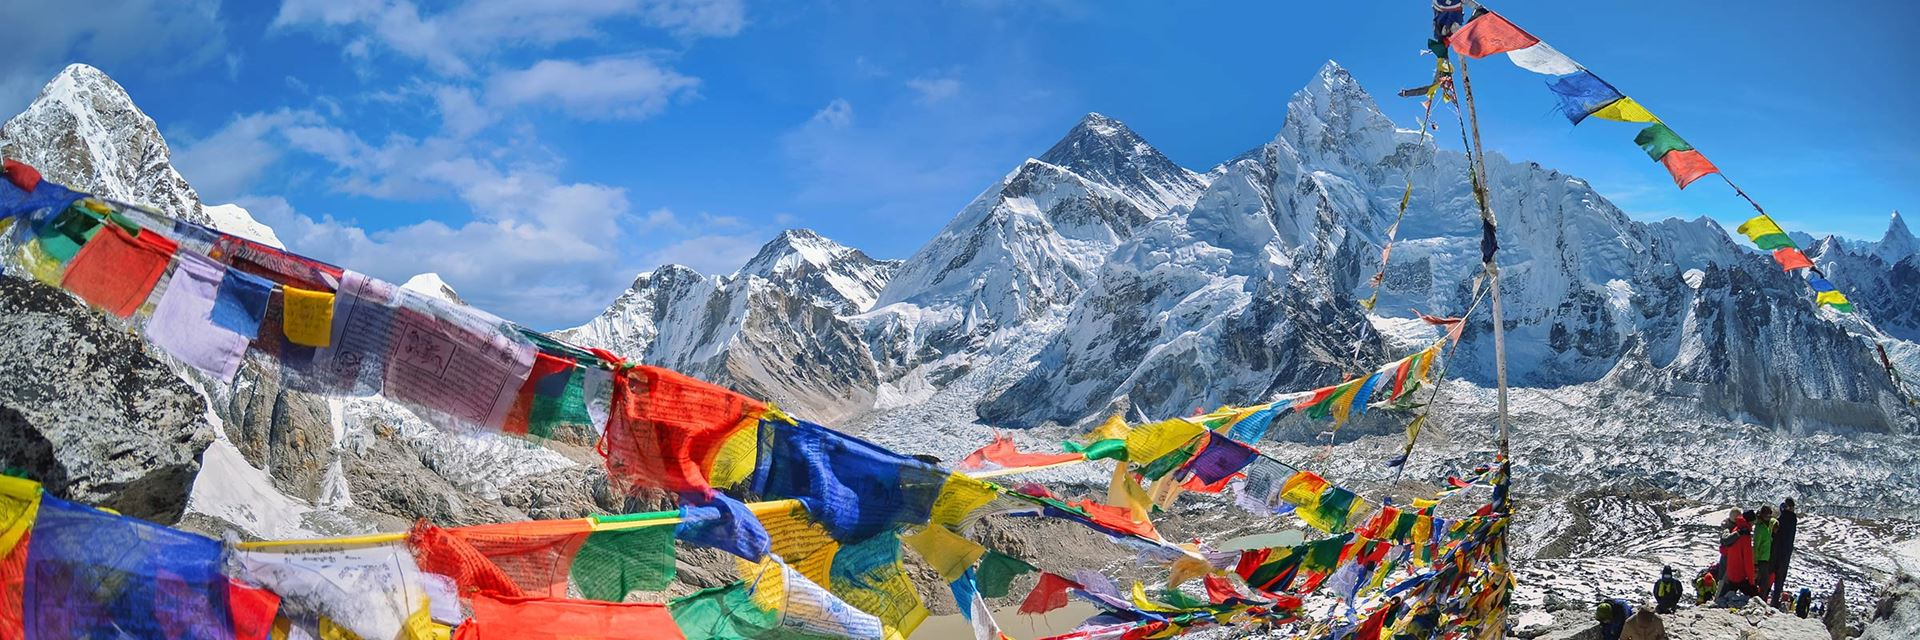 Where to go in the Himalaya | Travel guide | Audley Travel